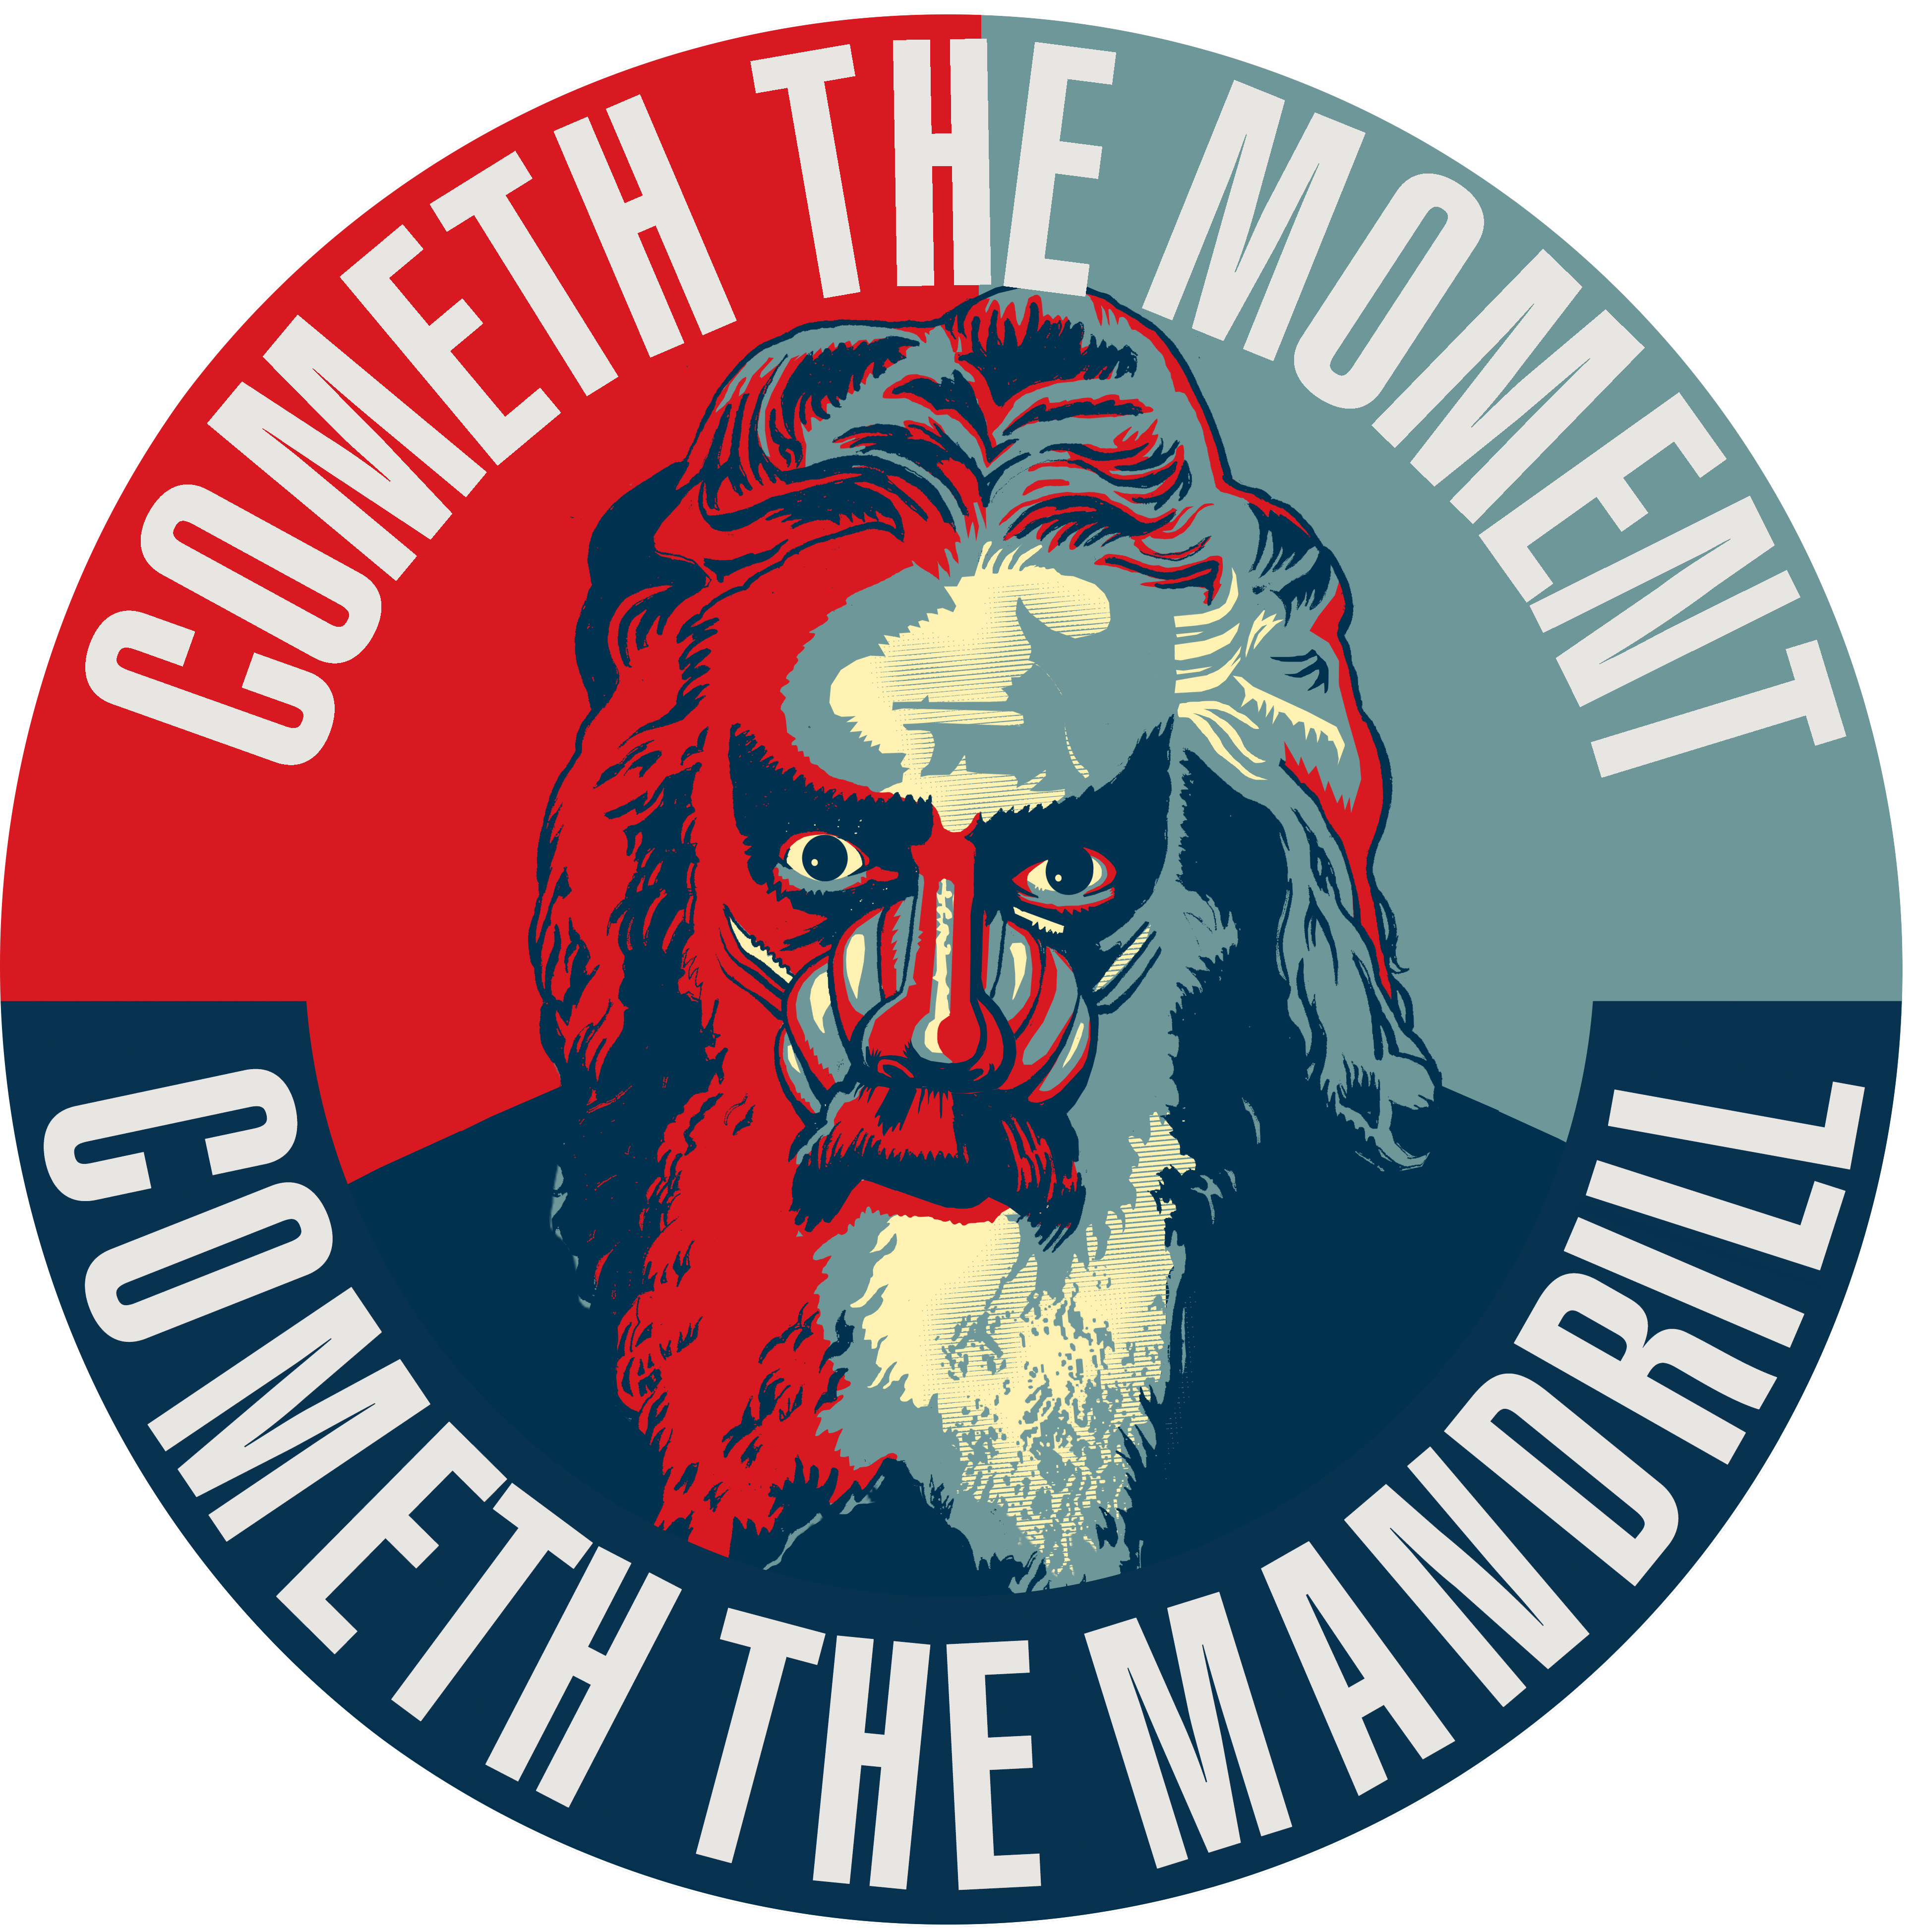 Cometh The Mandrill